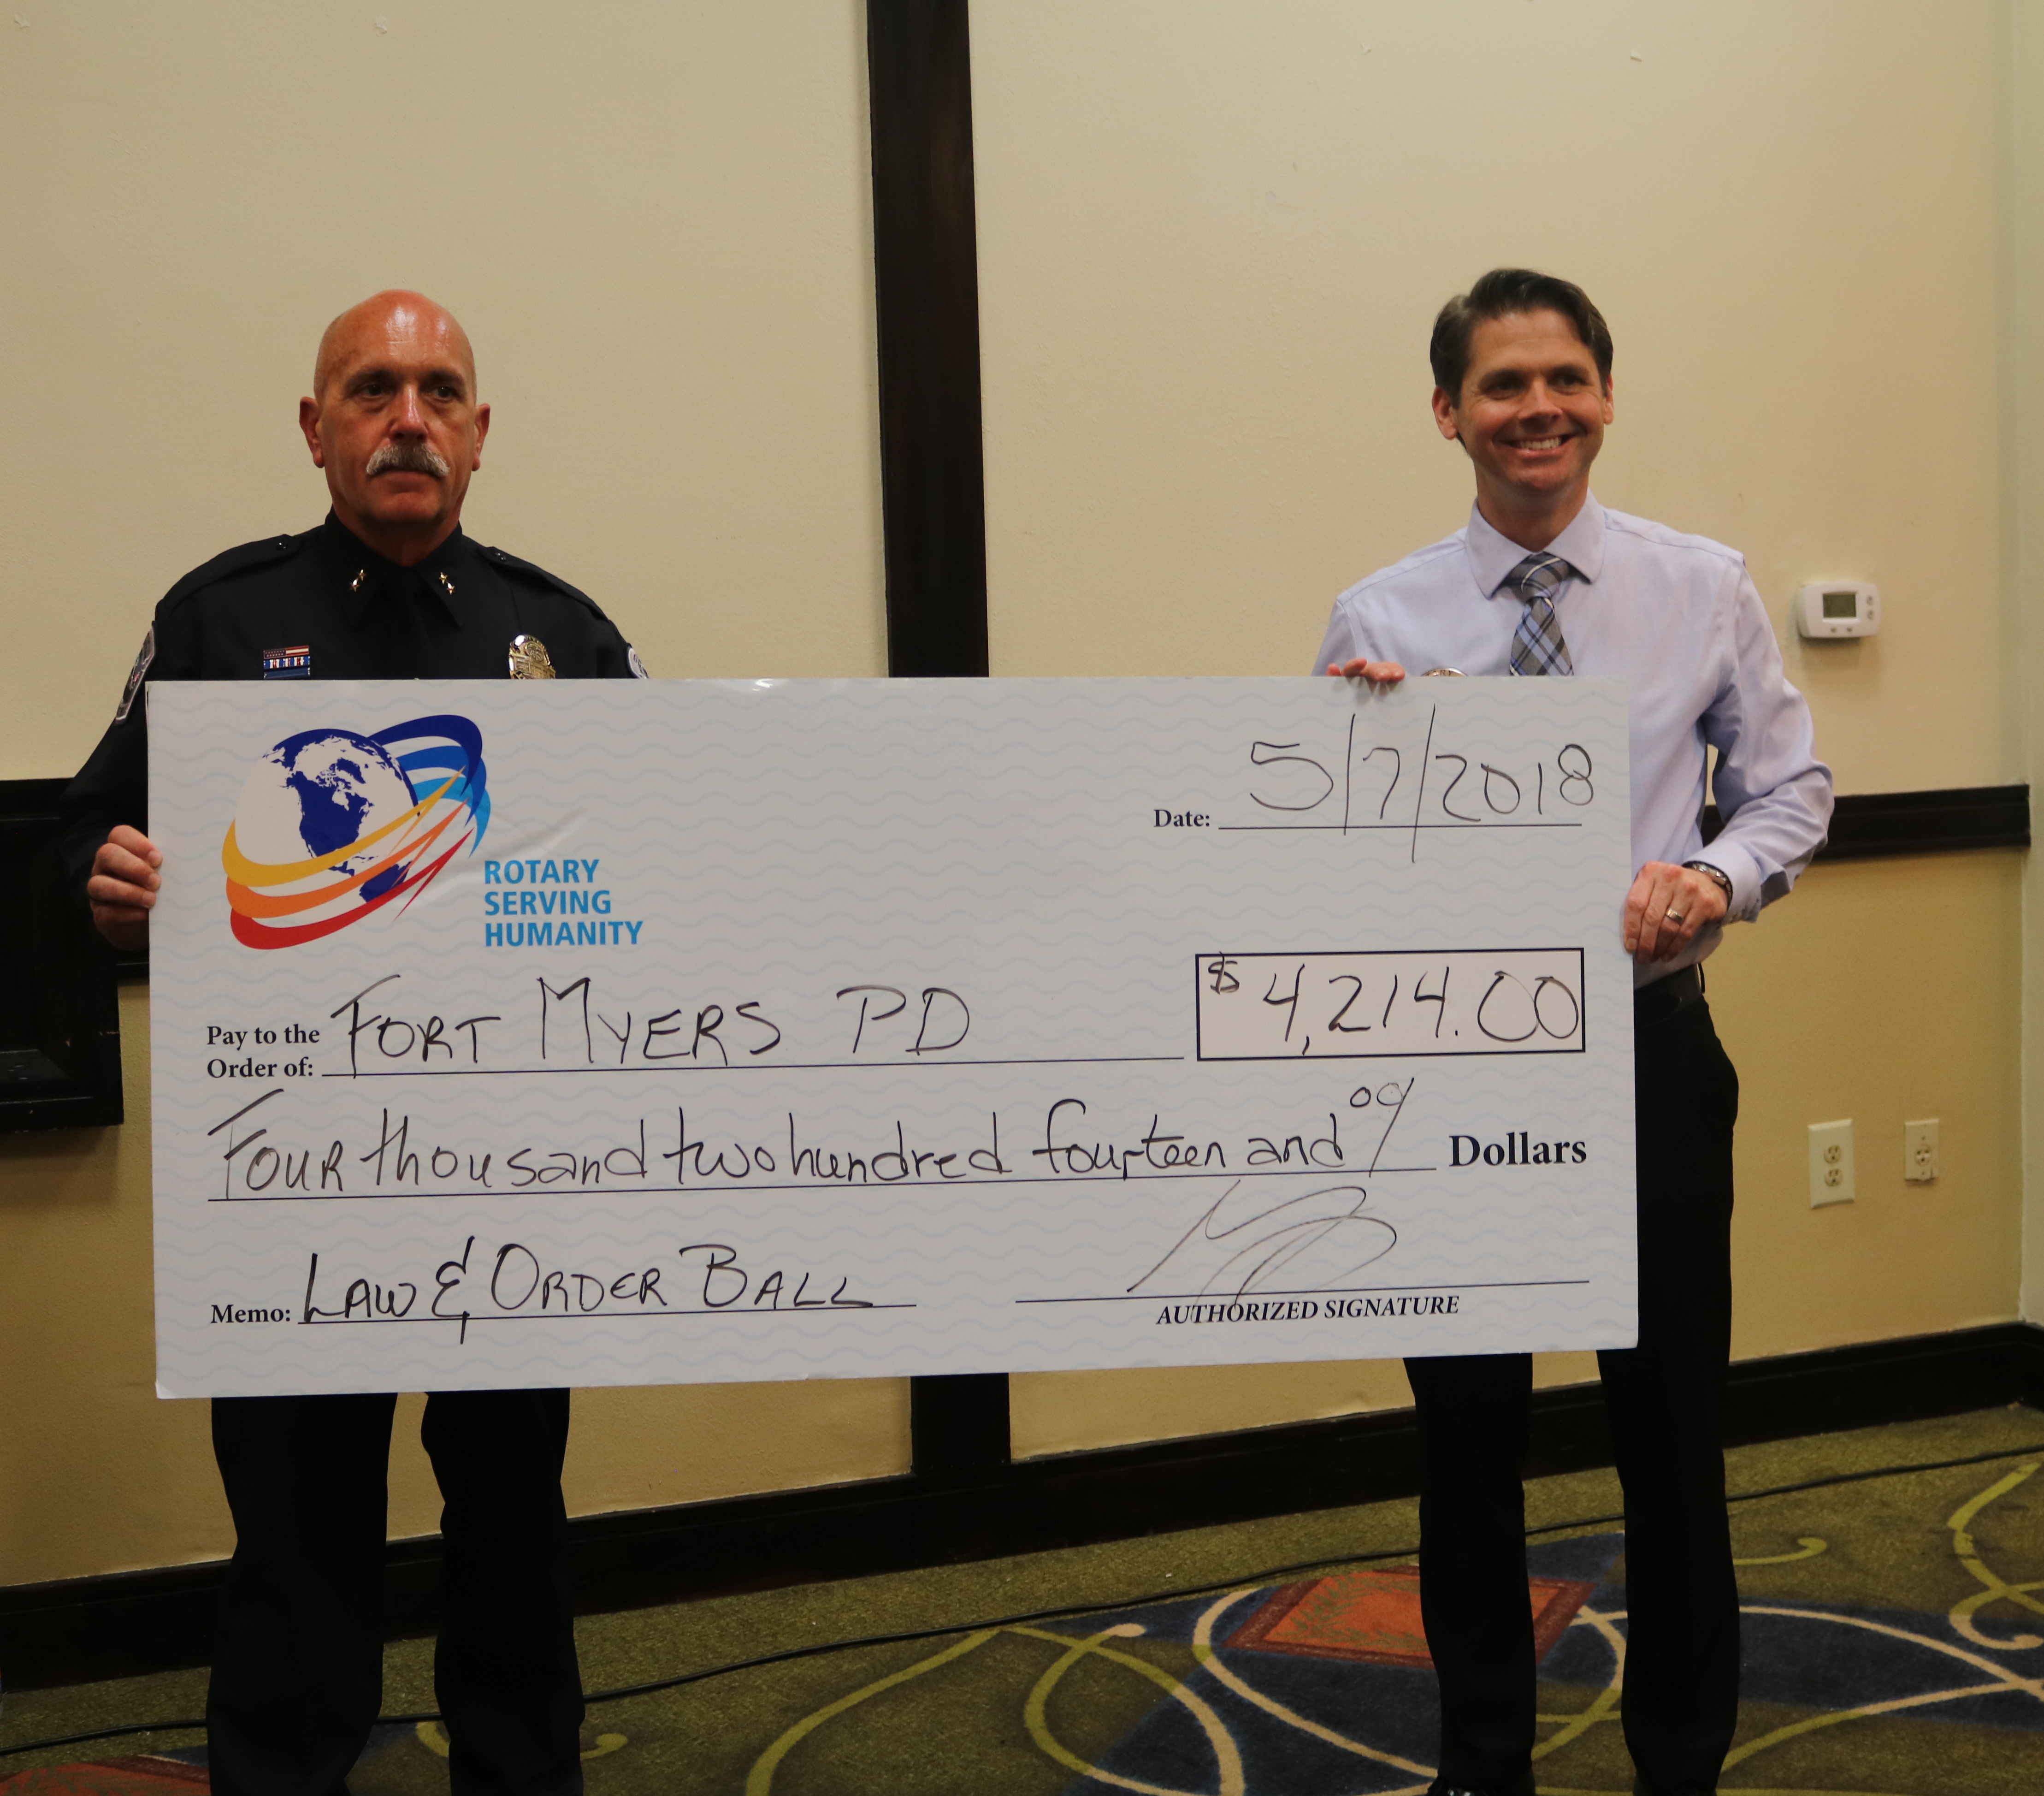 Rotary Club Of Fort Myers South Donates 29498 To Fund Youth Law